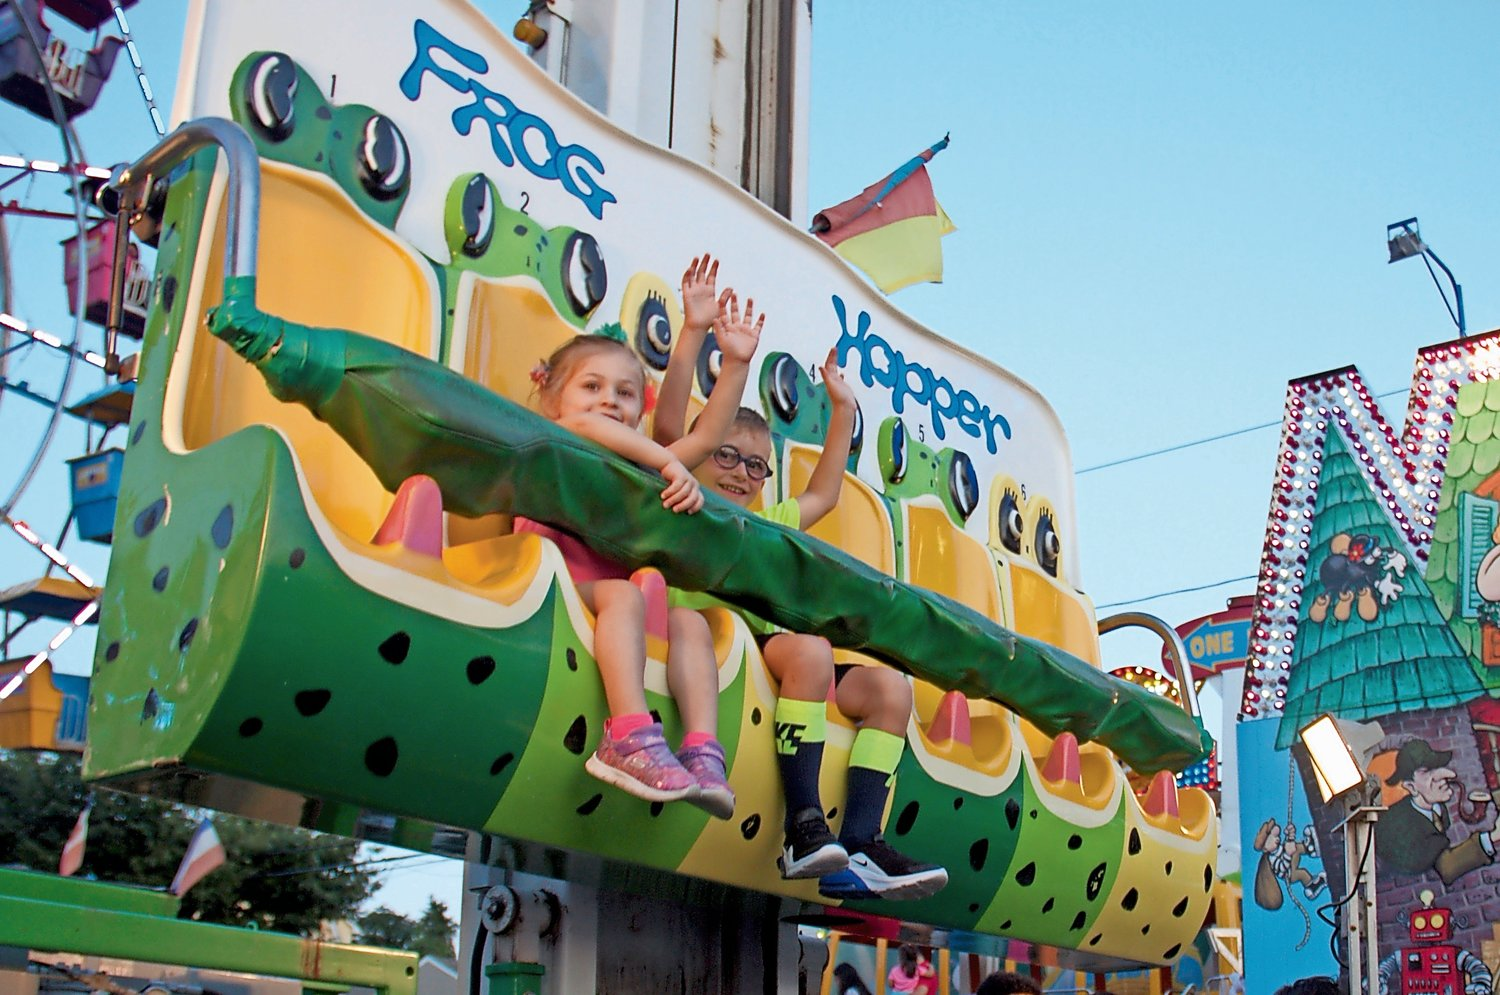 Alyssa Imperatore, 3, left, and Jake Pierce, 5, dared to lift their arms during the Frog Hopper ride.